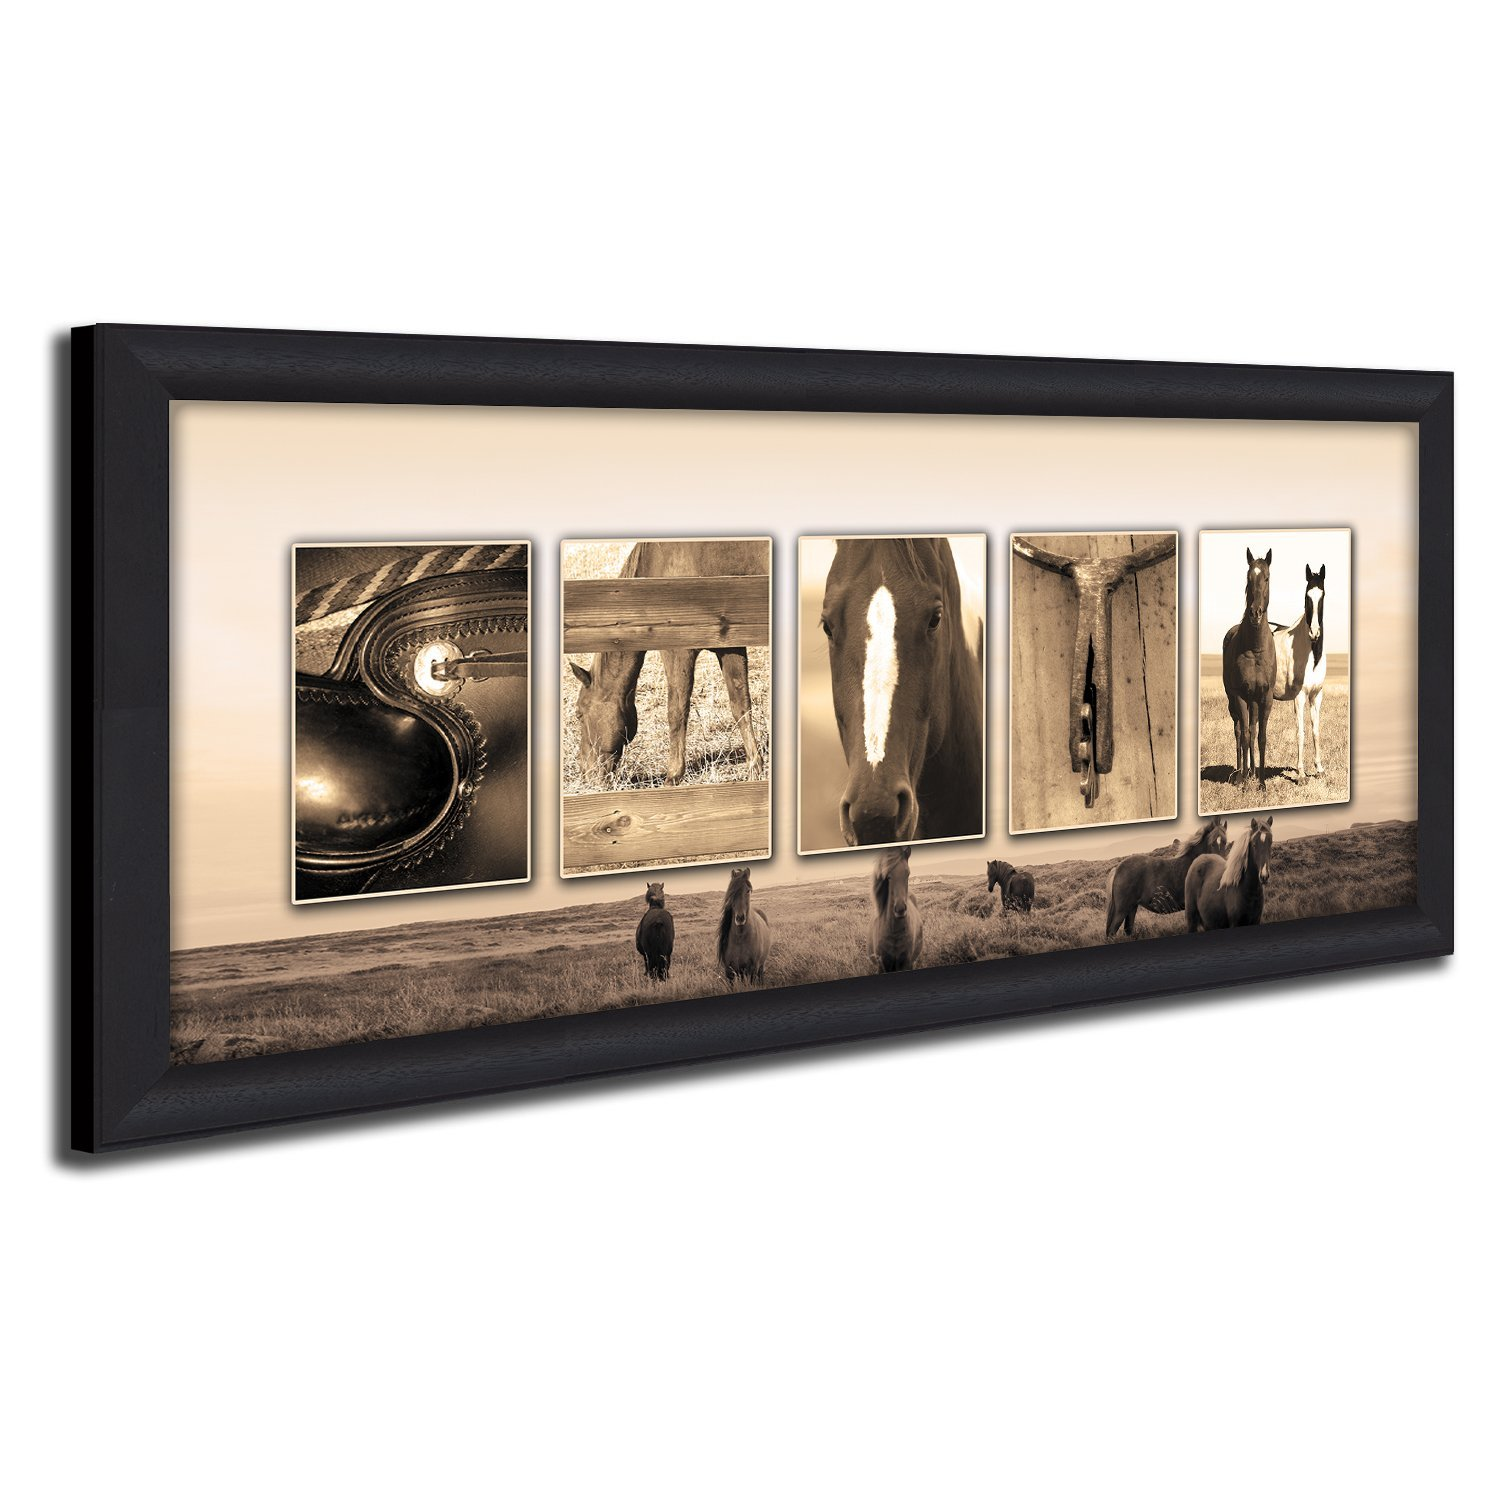 Personalized Western, Country, Equestrian, Horse Name Art Print. (Framed Canvas - 13.5 x 32.5)